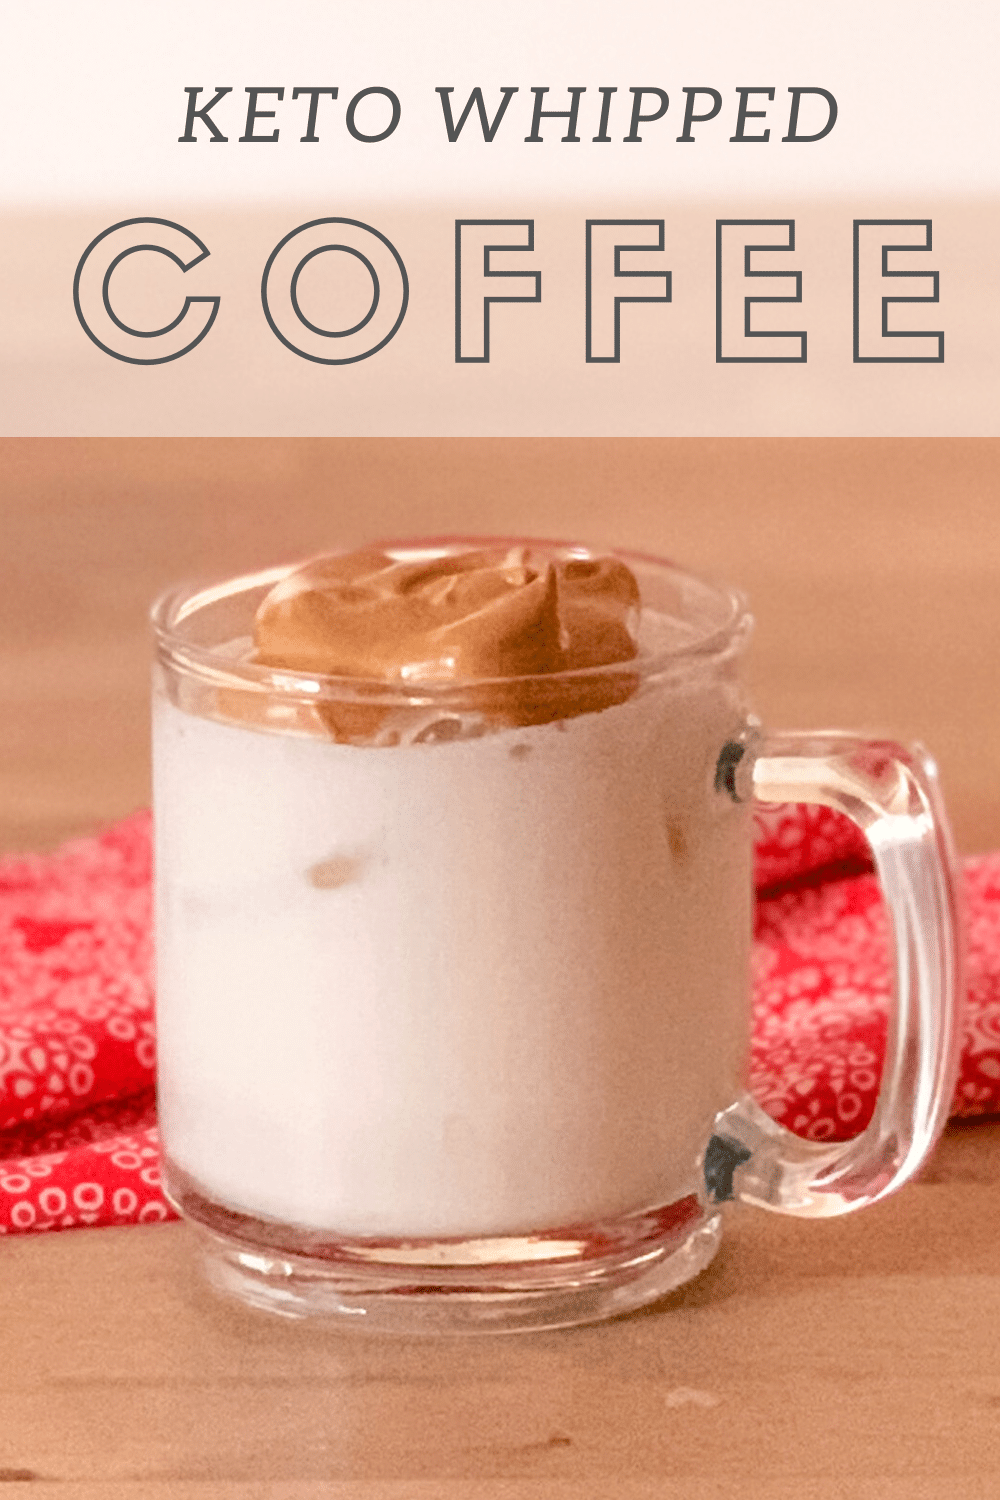 Keto Whipped Coffee Make with your choice of milk for a